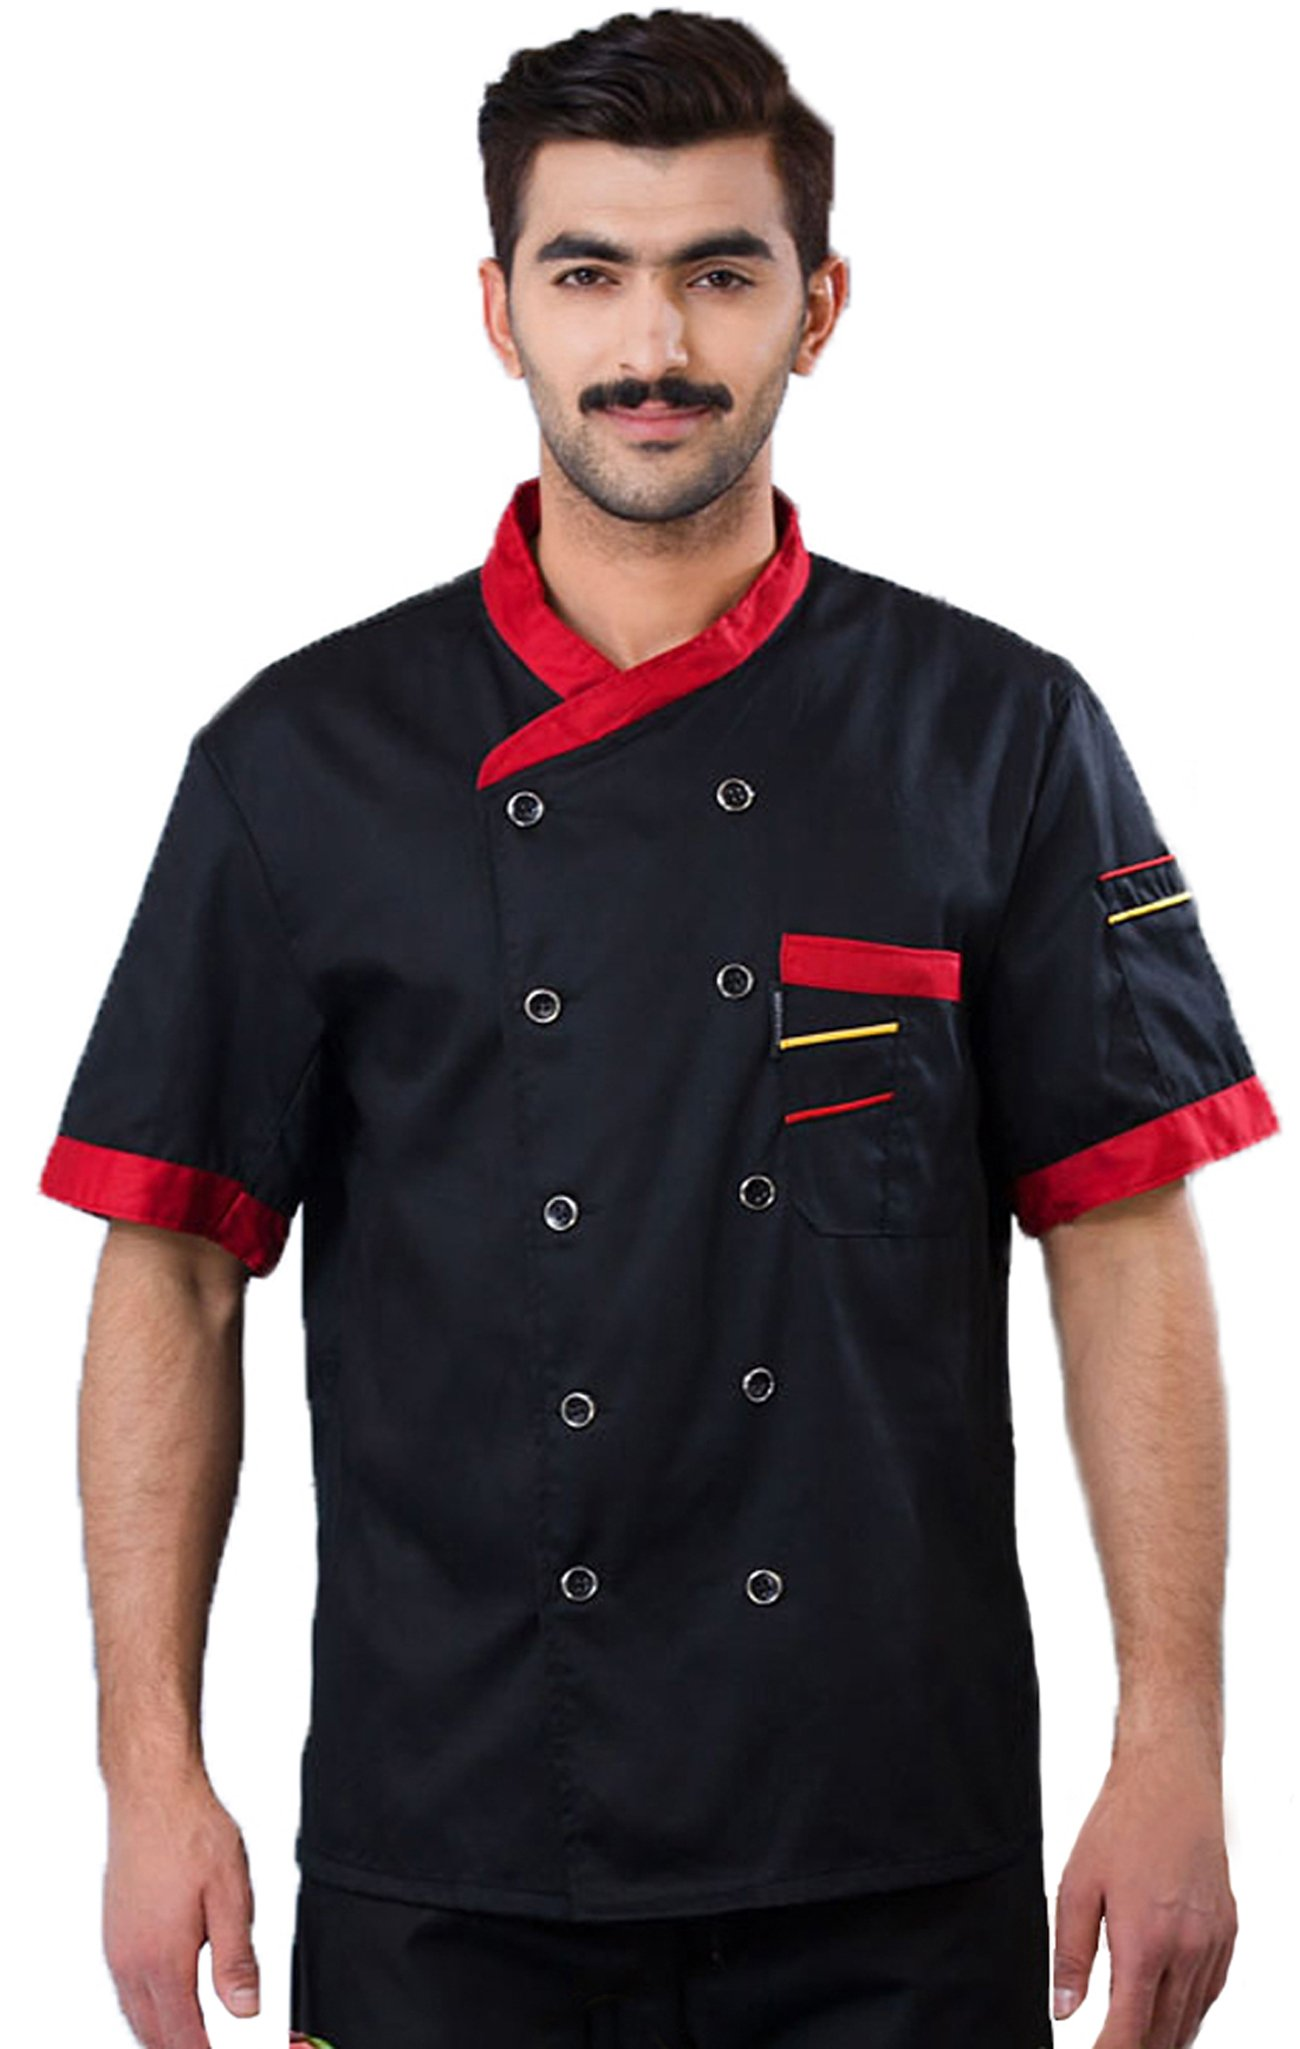 3colors Chef Clothing Hotel Restaurant Chefs Work Clothes Short Sleeve Chef Jack (M, black)